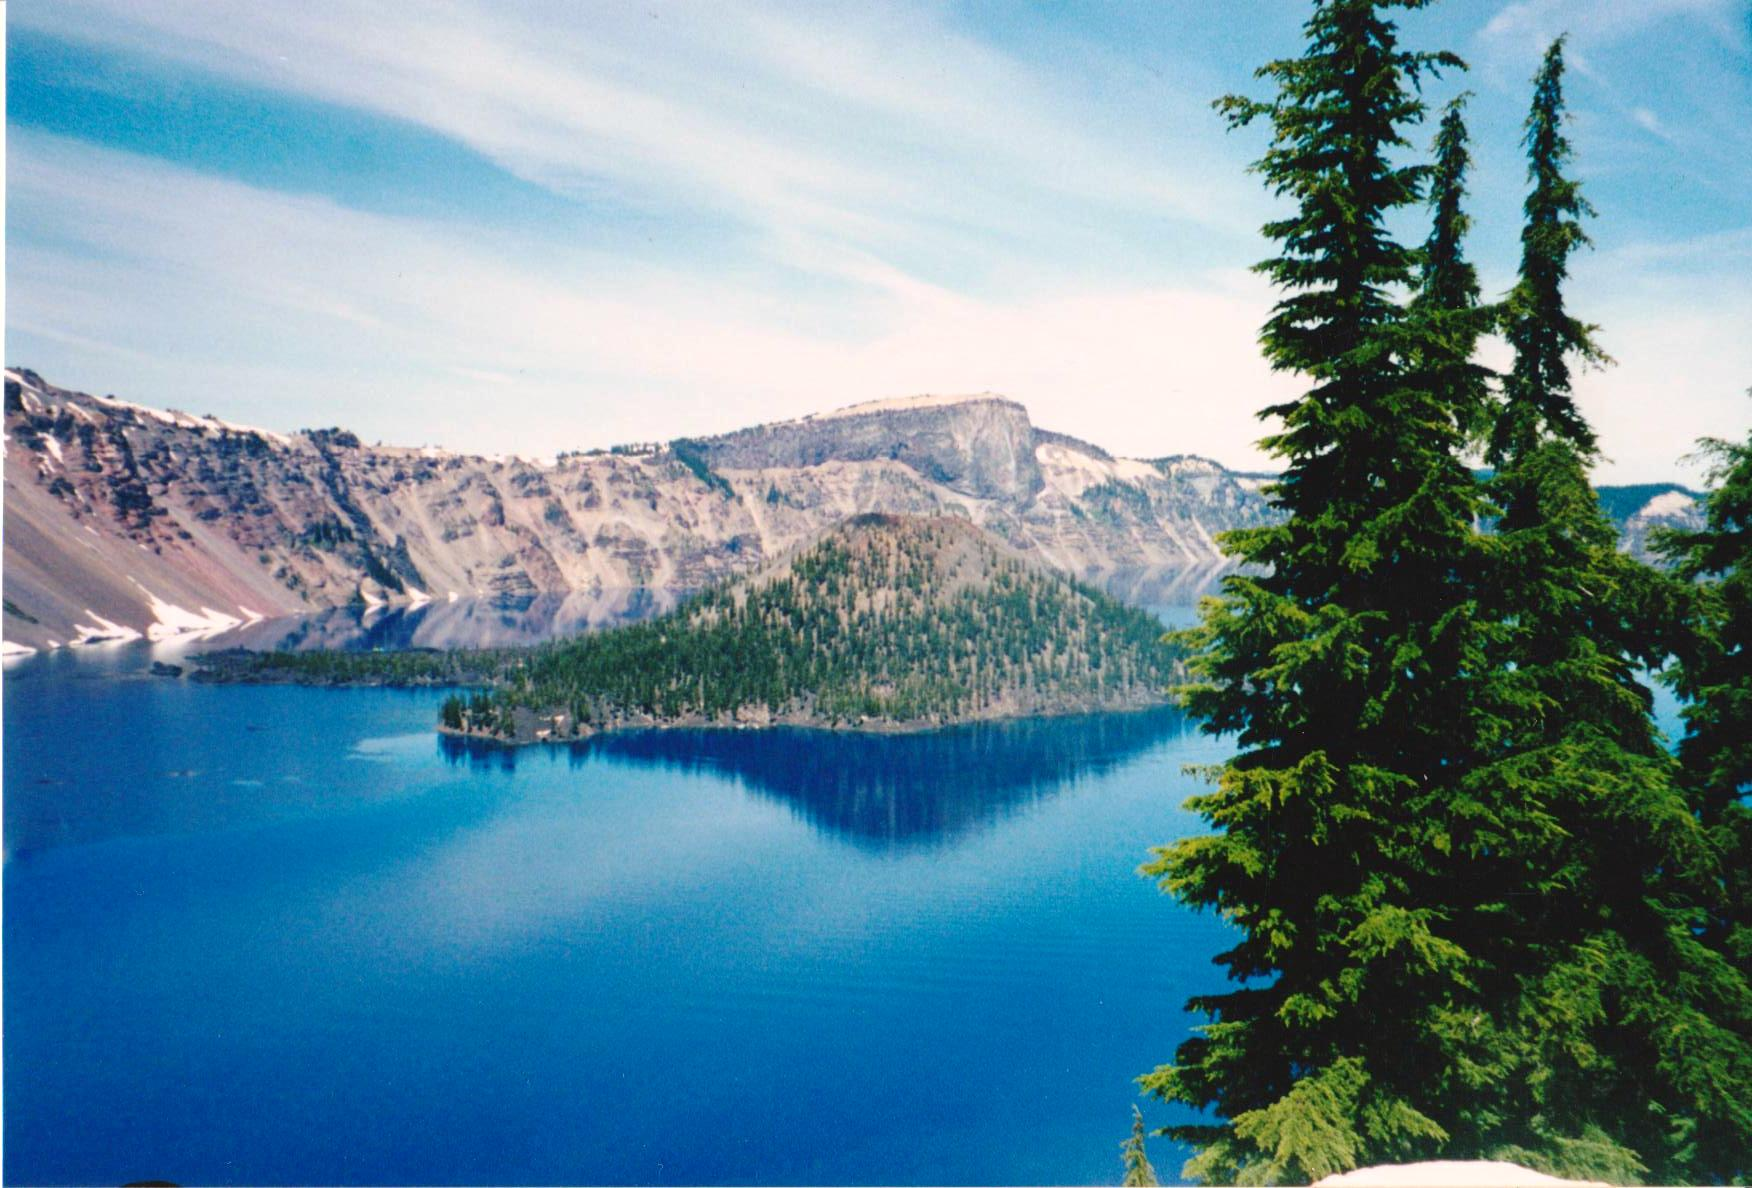 Crater Lake Early 2000s.jpg